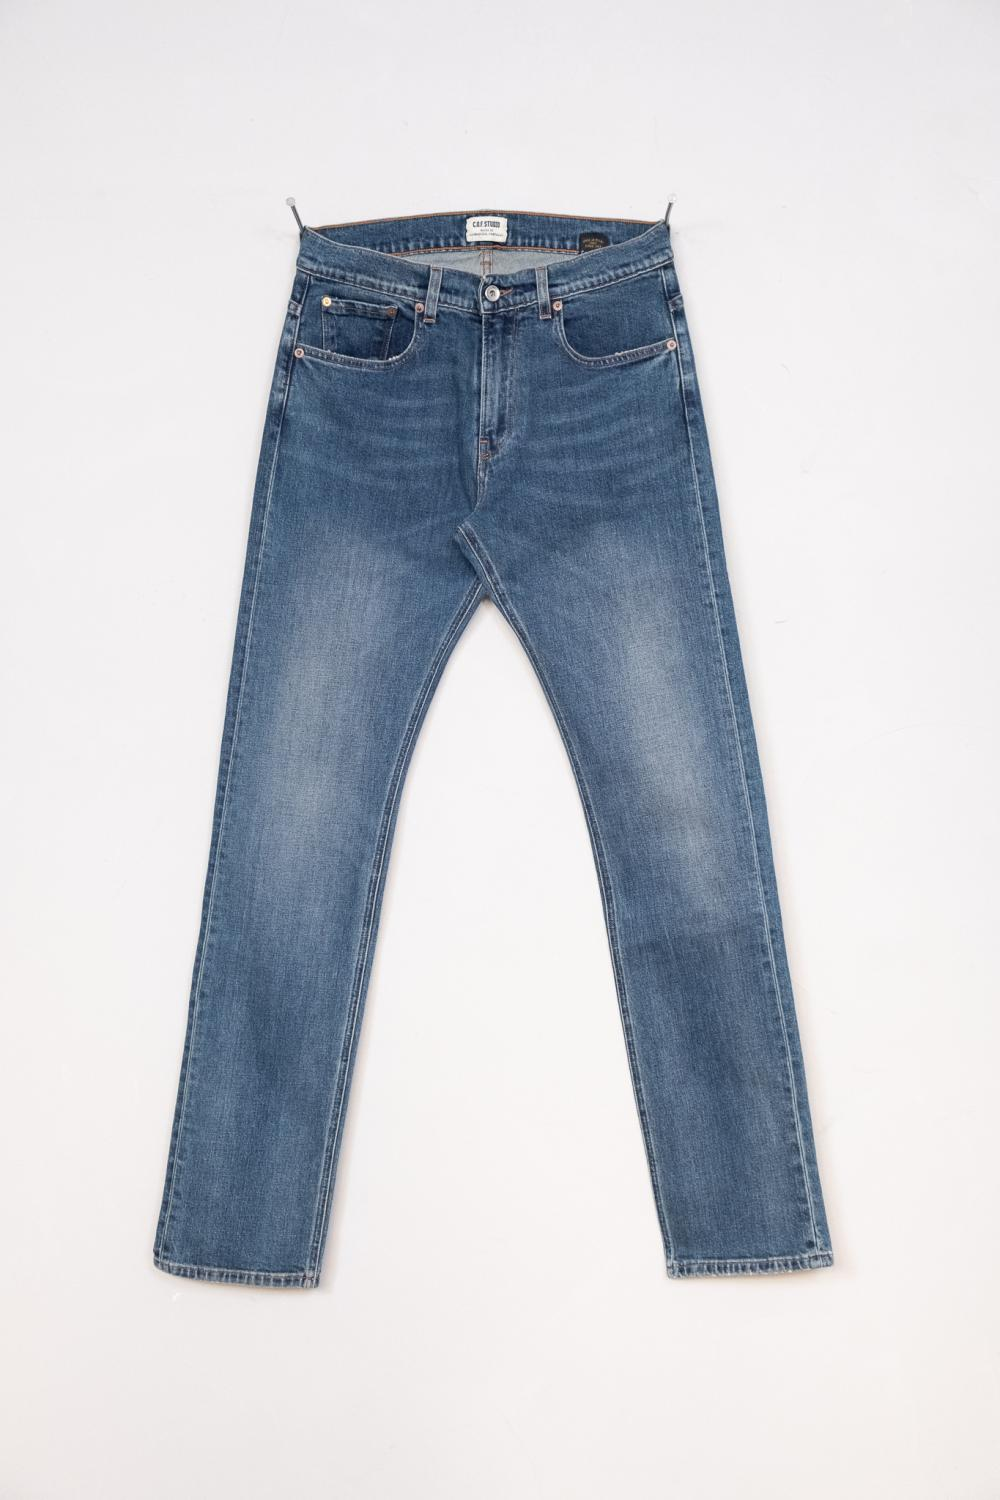 M1 Slim - Indigo - Heavy Used